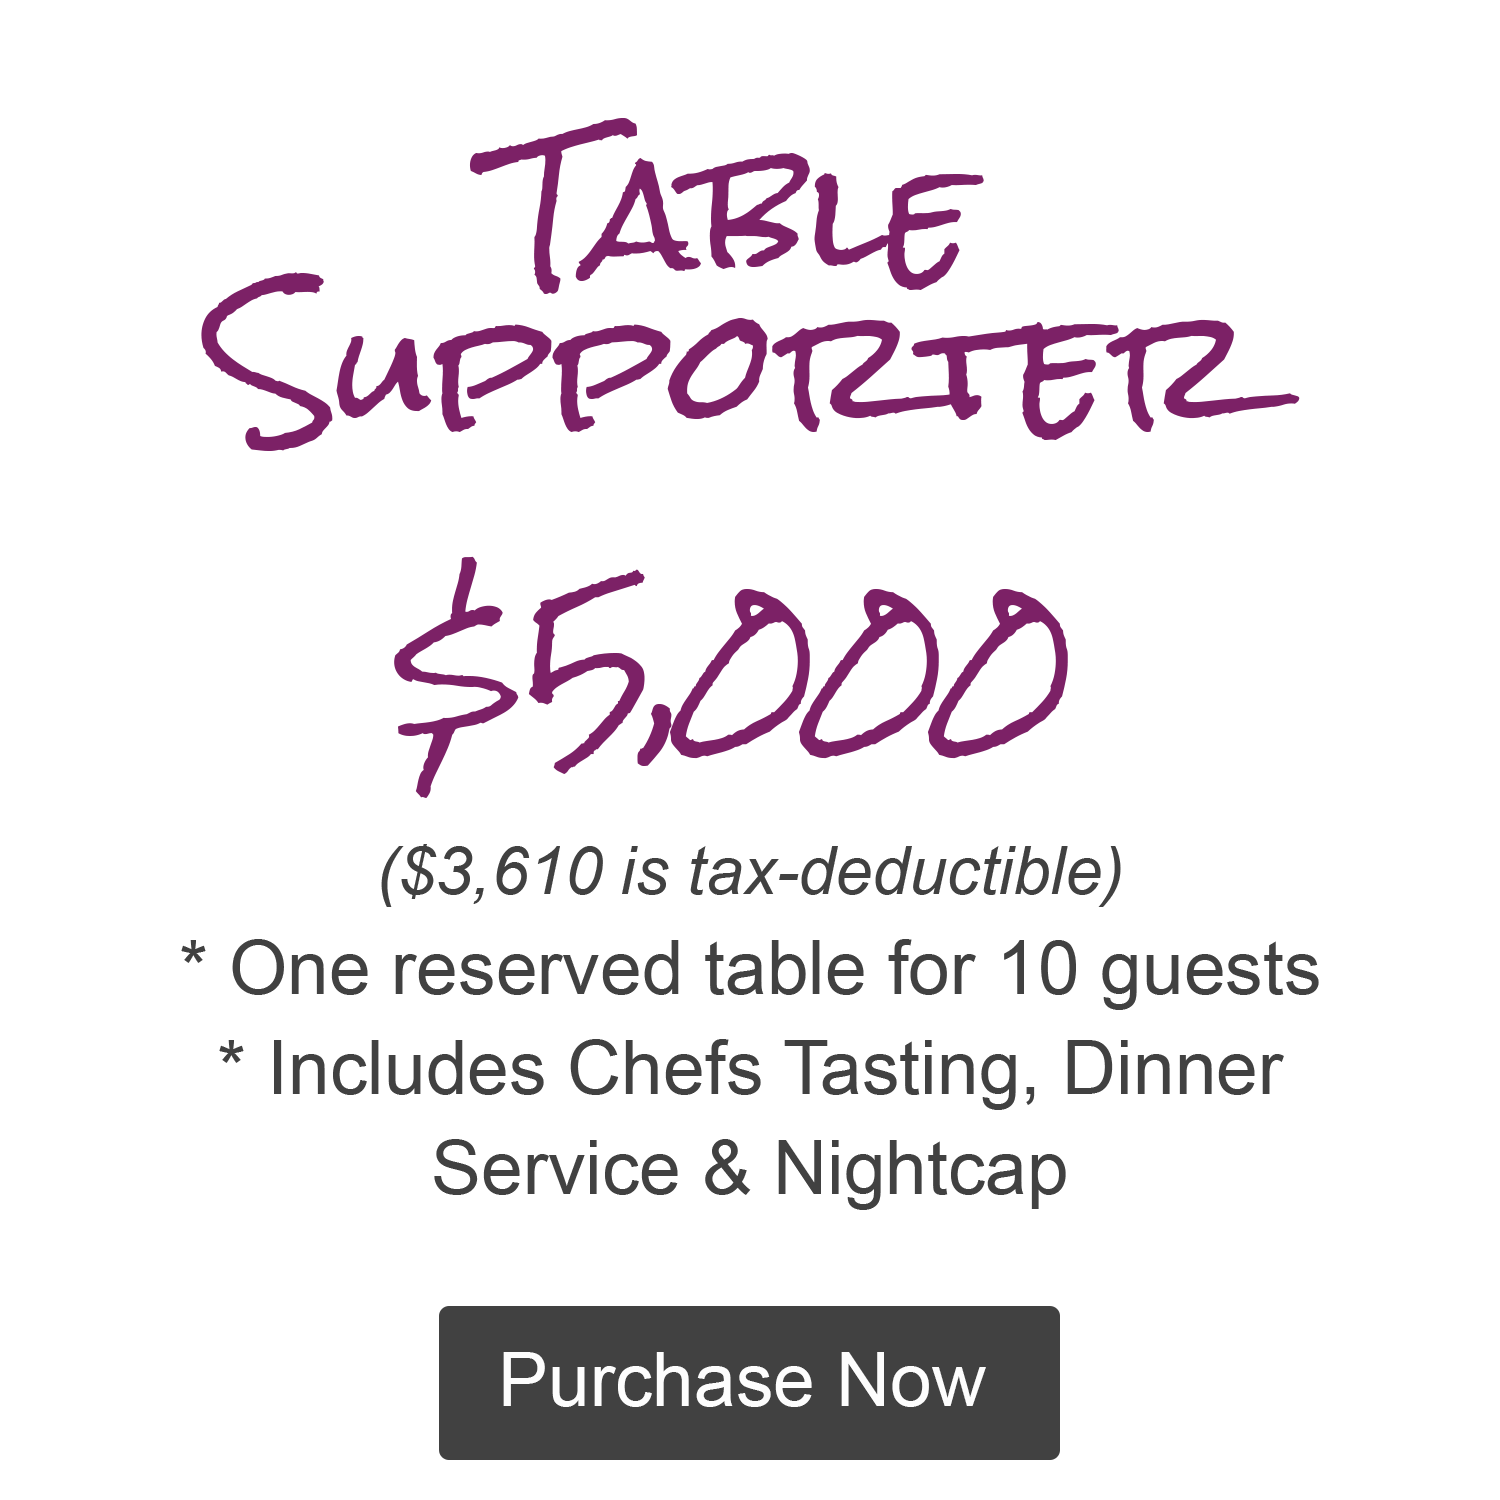 Table Supporter Full Button